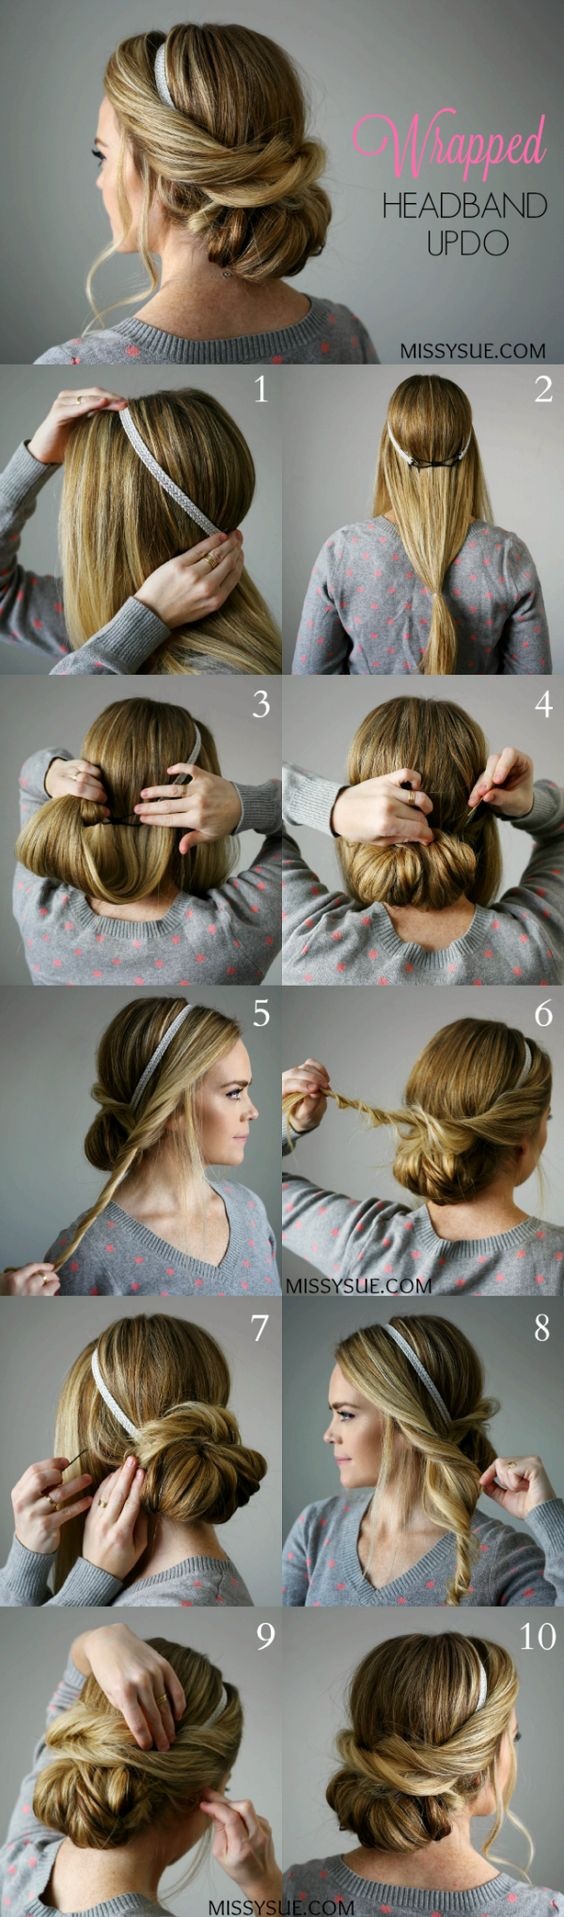 How to make a hair with a rim